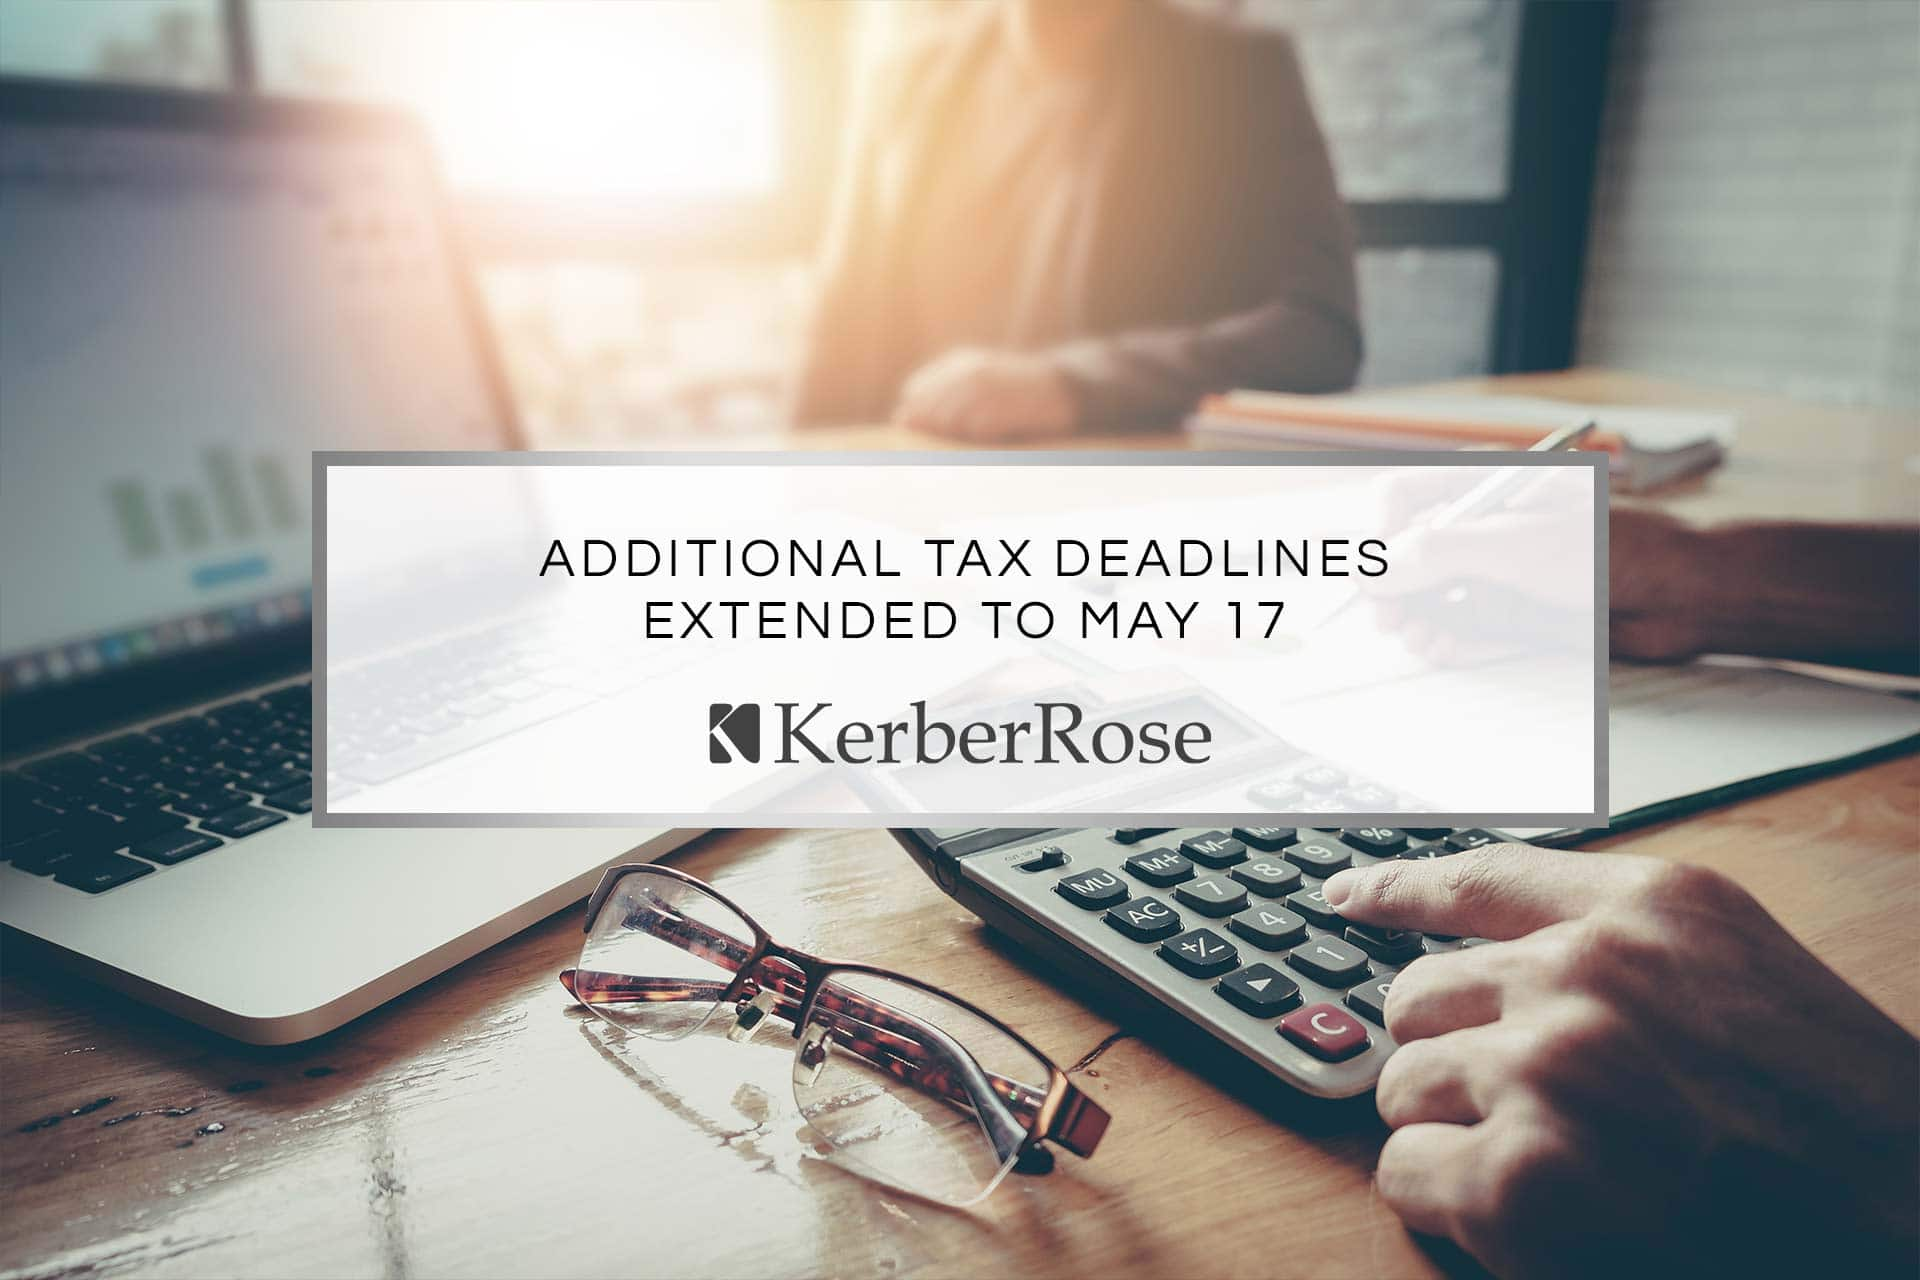 Additional Tax Deadlines Extended to May 17